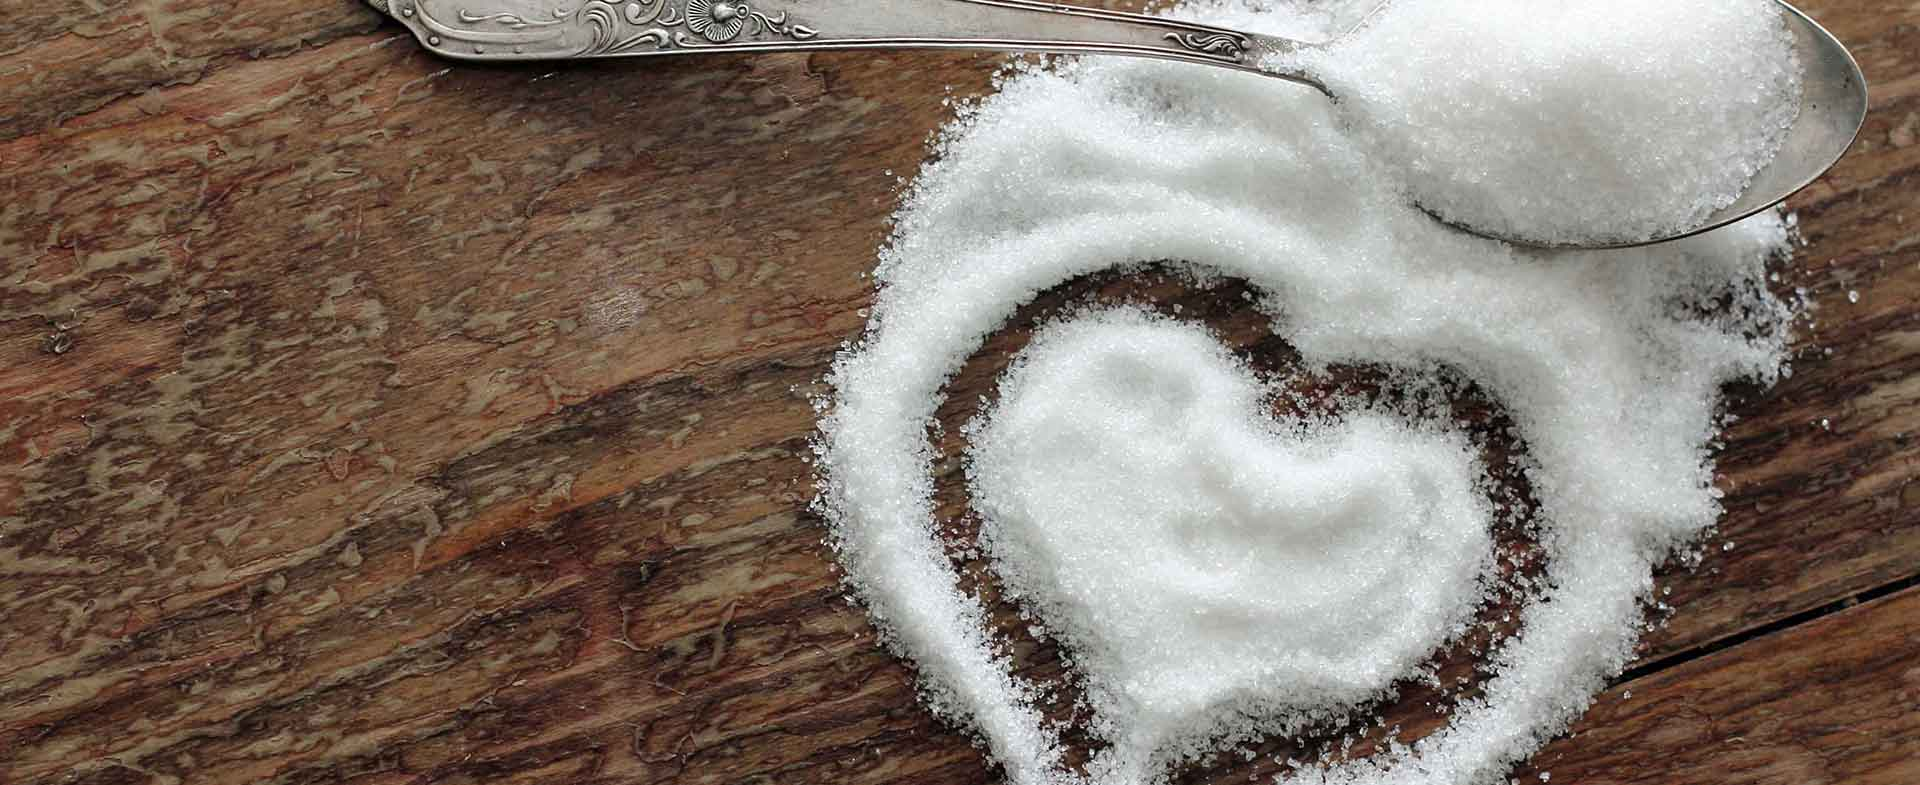 sugar making heart shape